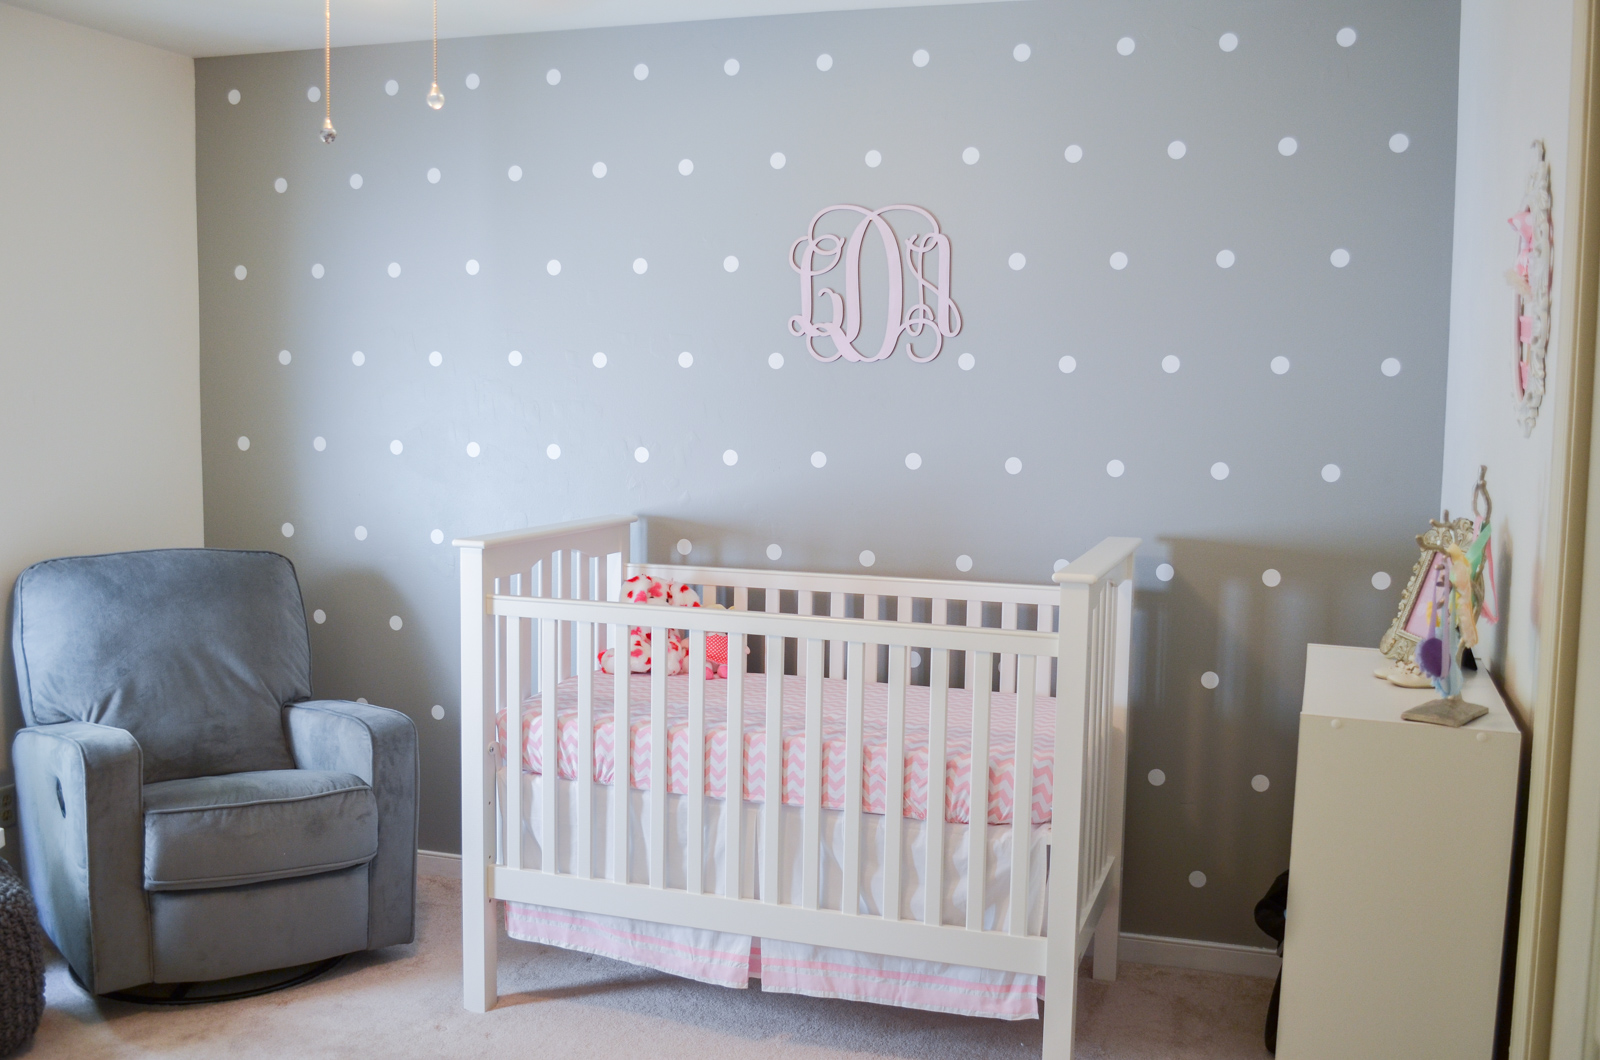 Diy Polka Dot Nursery Wall By Lauren M